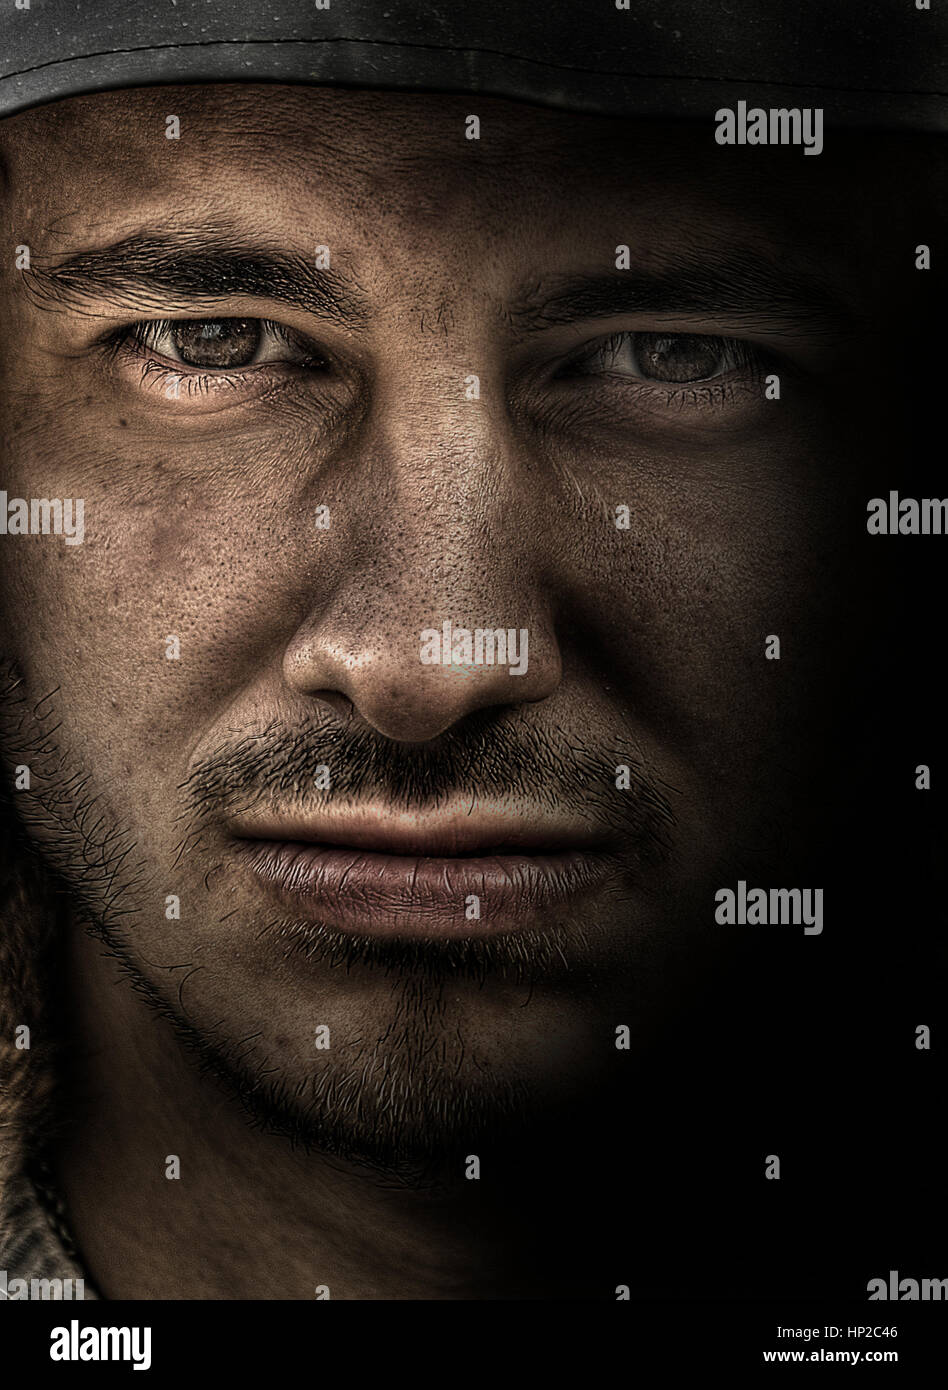 Dirty soldier - Stock Image